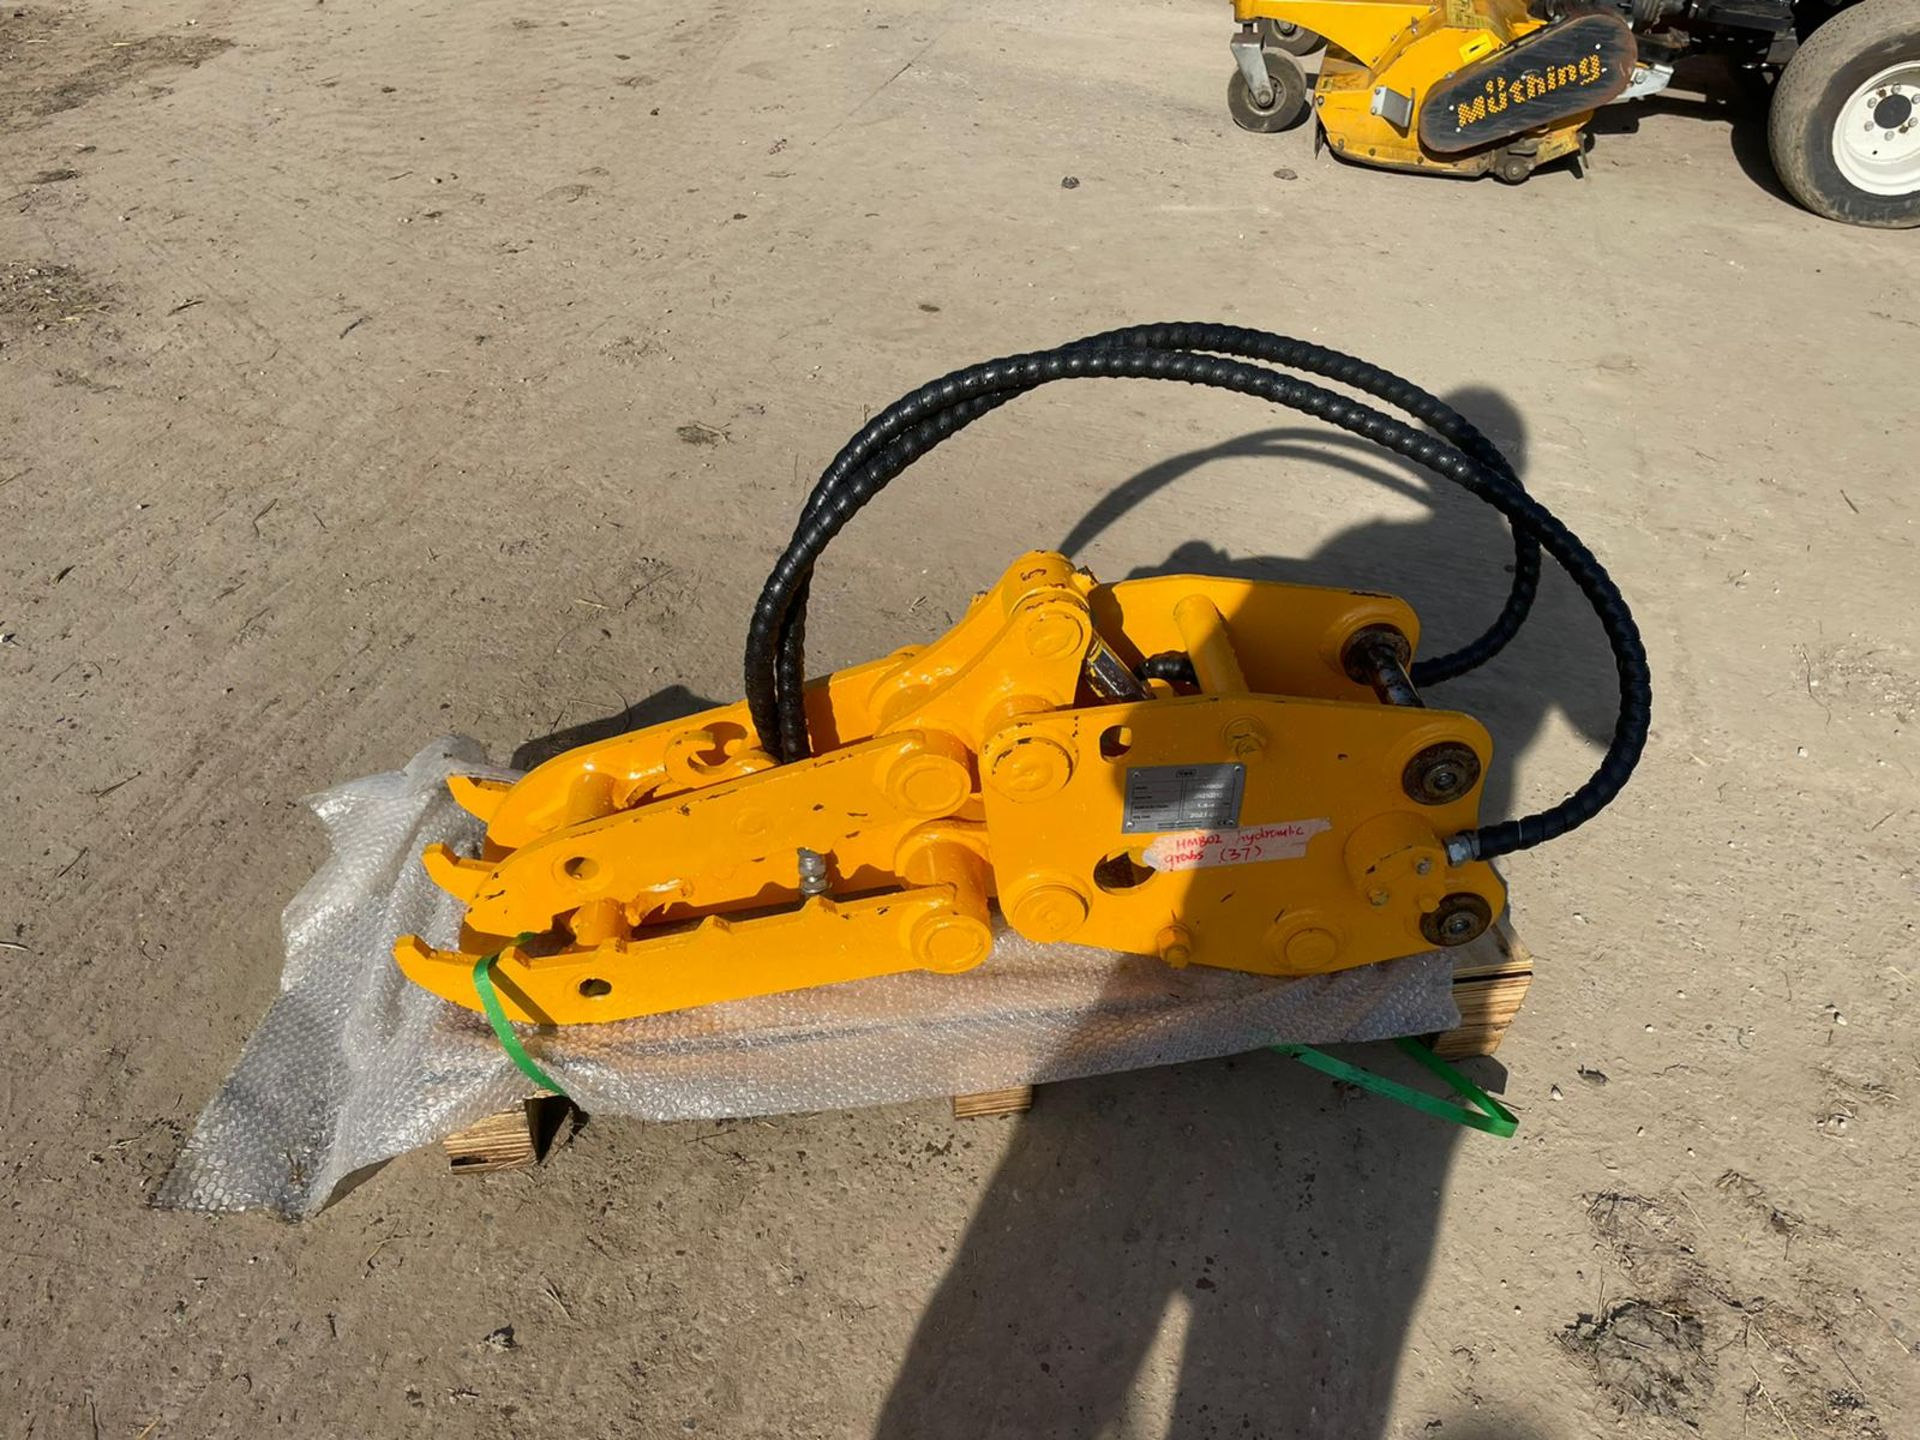 BRAND NEW AND UNUSED FINGER GRAB, HYDRAULIC DRIVEN, 35MM PINS *PLUS VAT* - Image 3 of 4